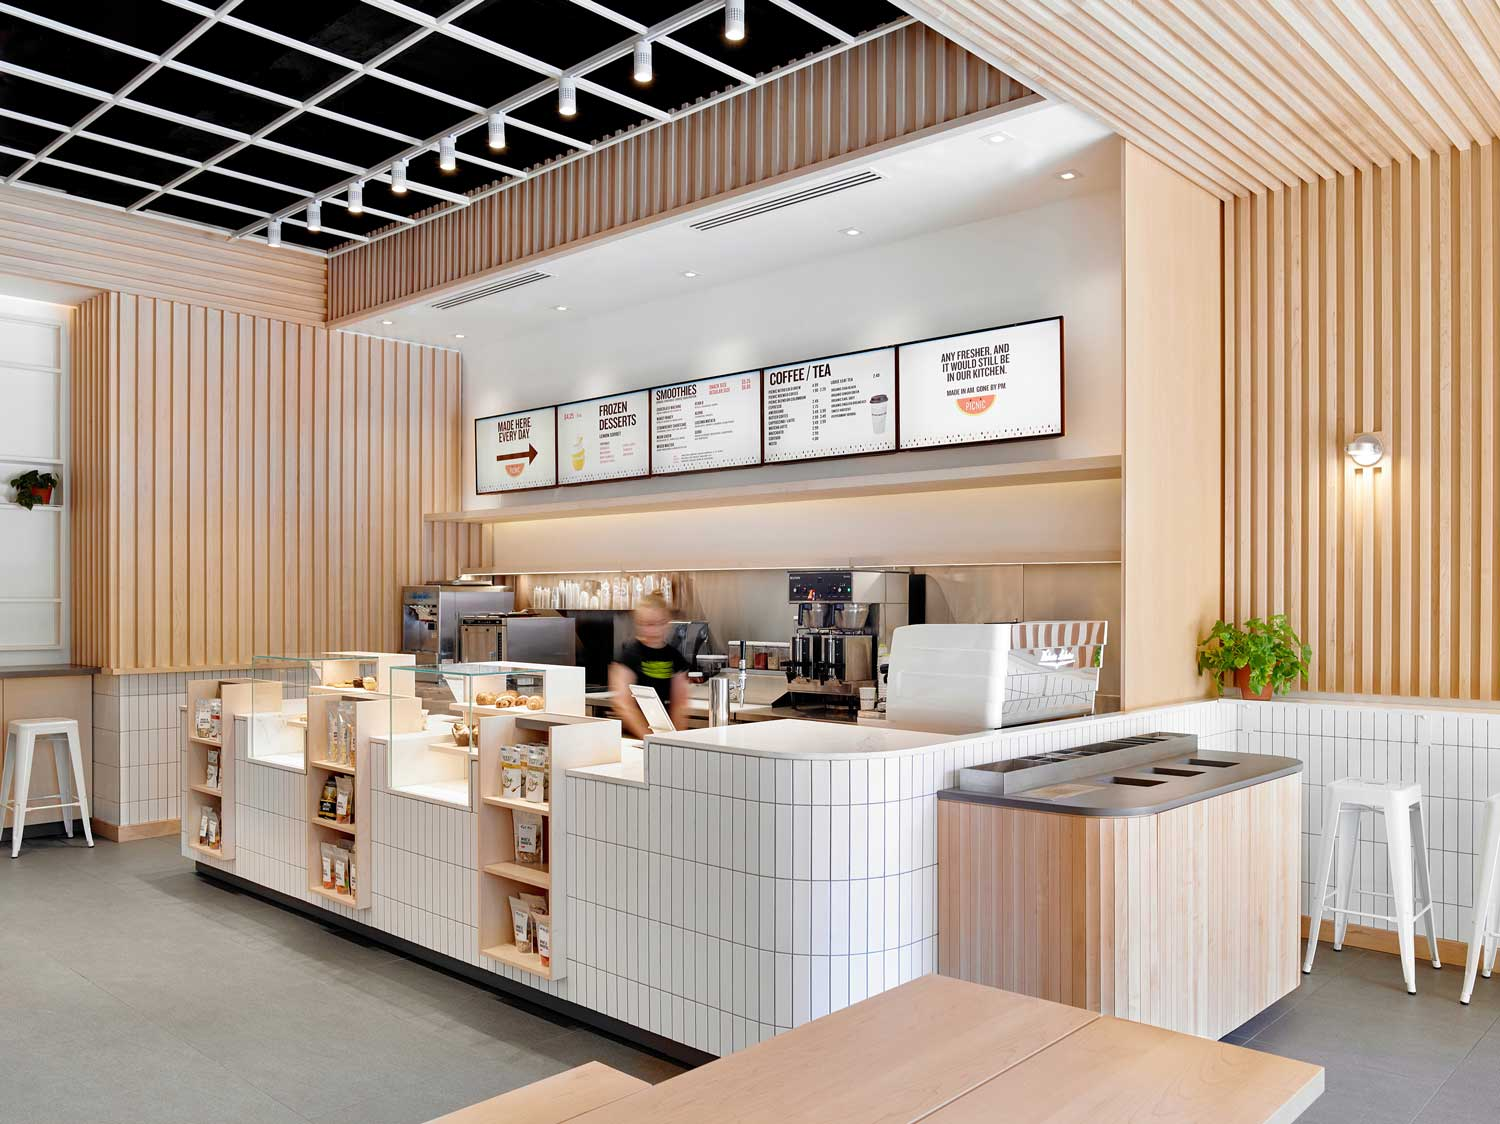 Interior design is key to expressing the brand experience